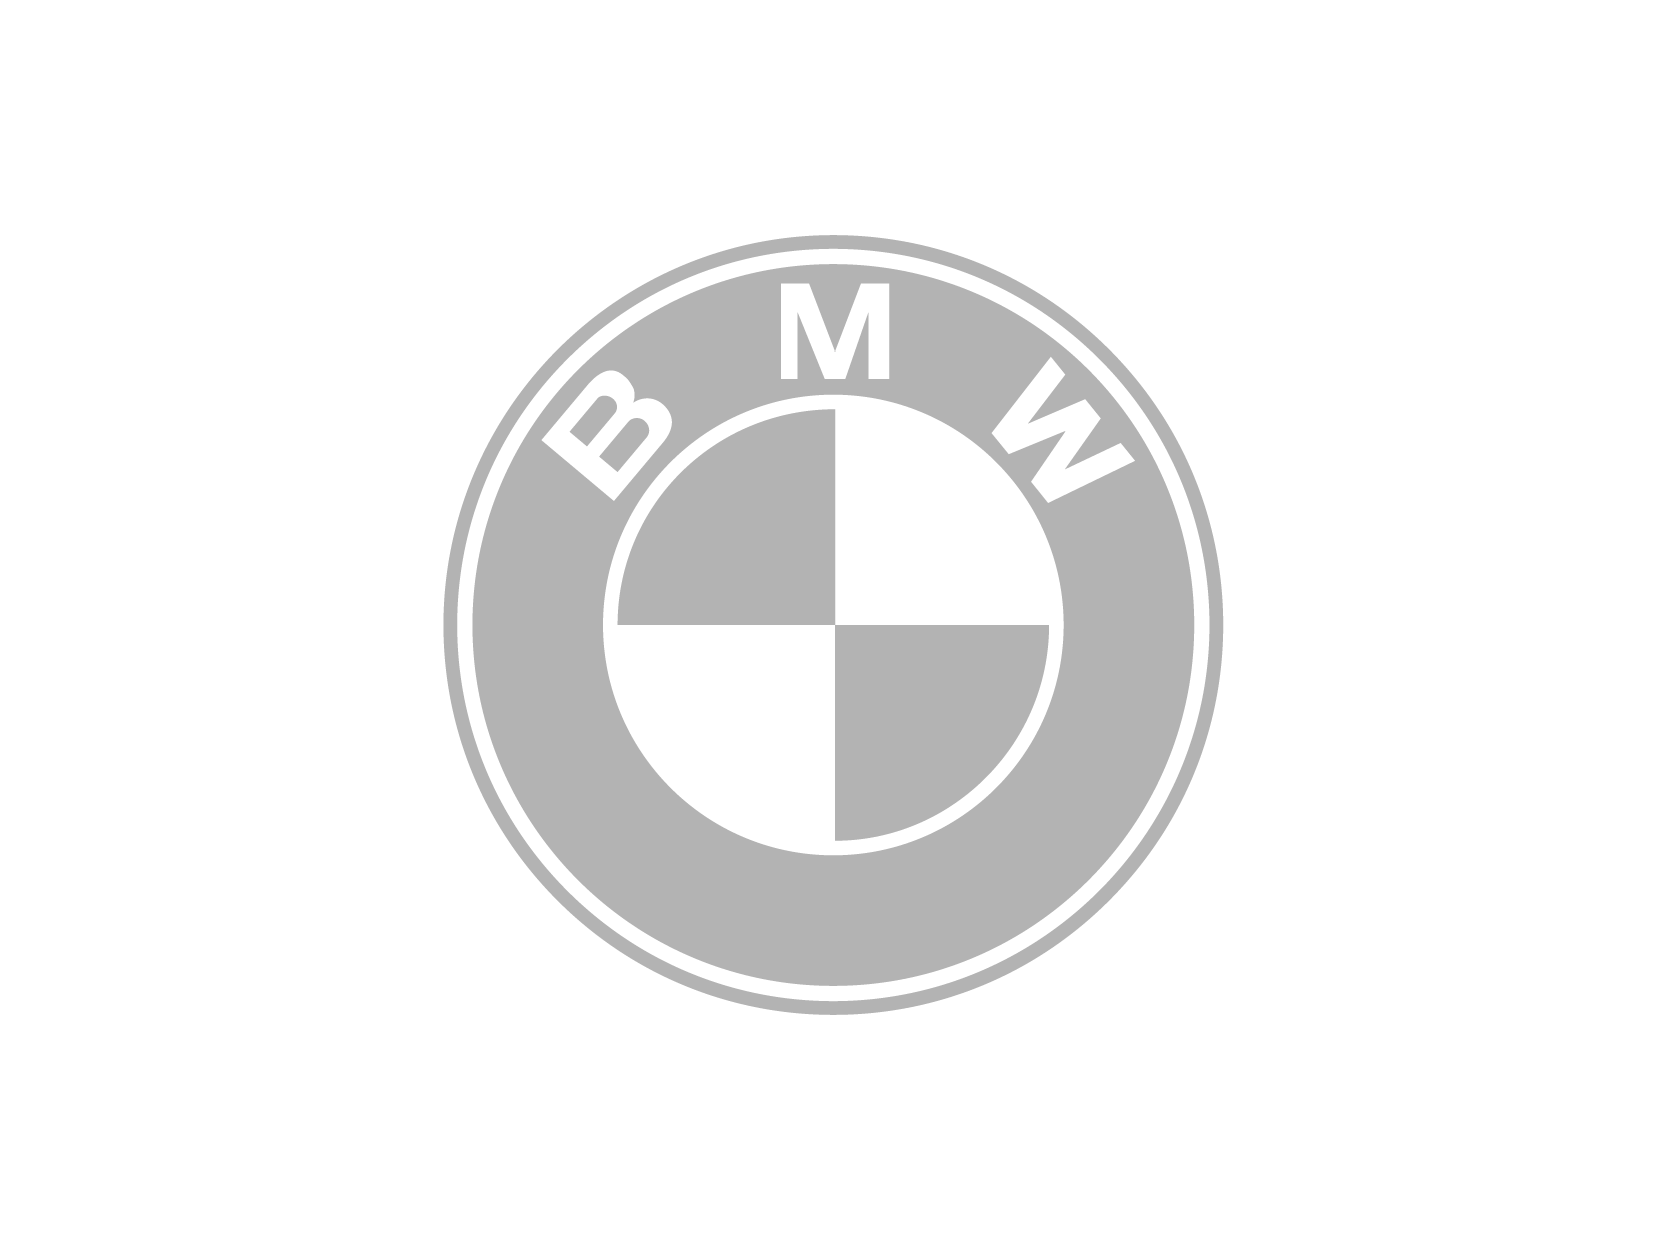 Series Car Bmw M3 Mercedes-Benz HQ Image Free PNG PNG Image